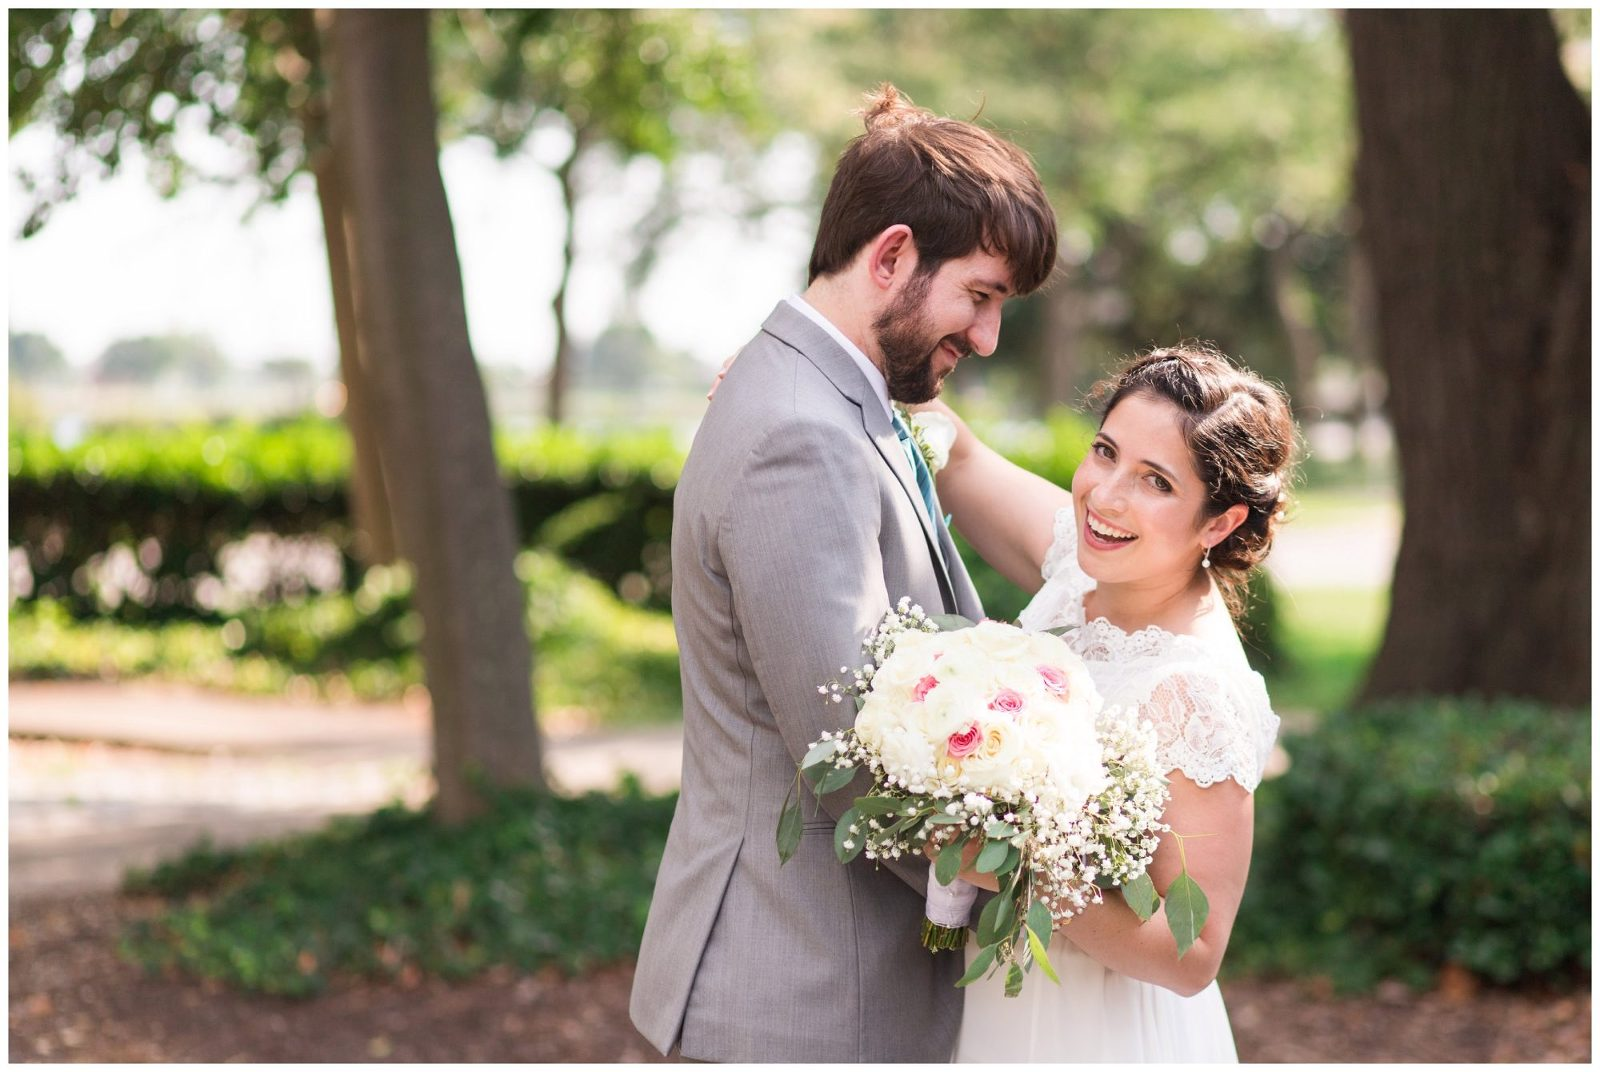 Virginia Wedding Photographer, romantic, elegant, Diana Gordon Photography, weddings, photo